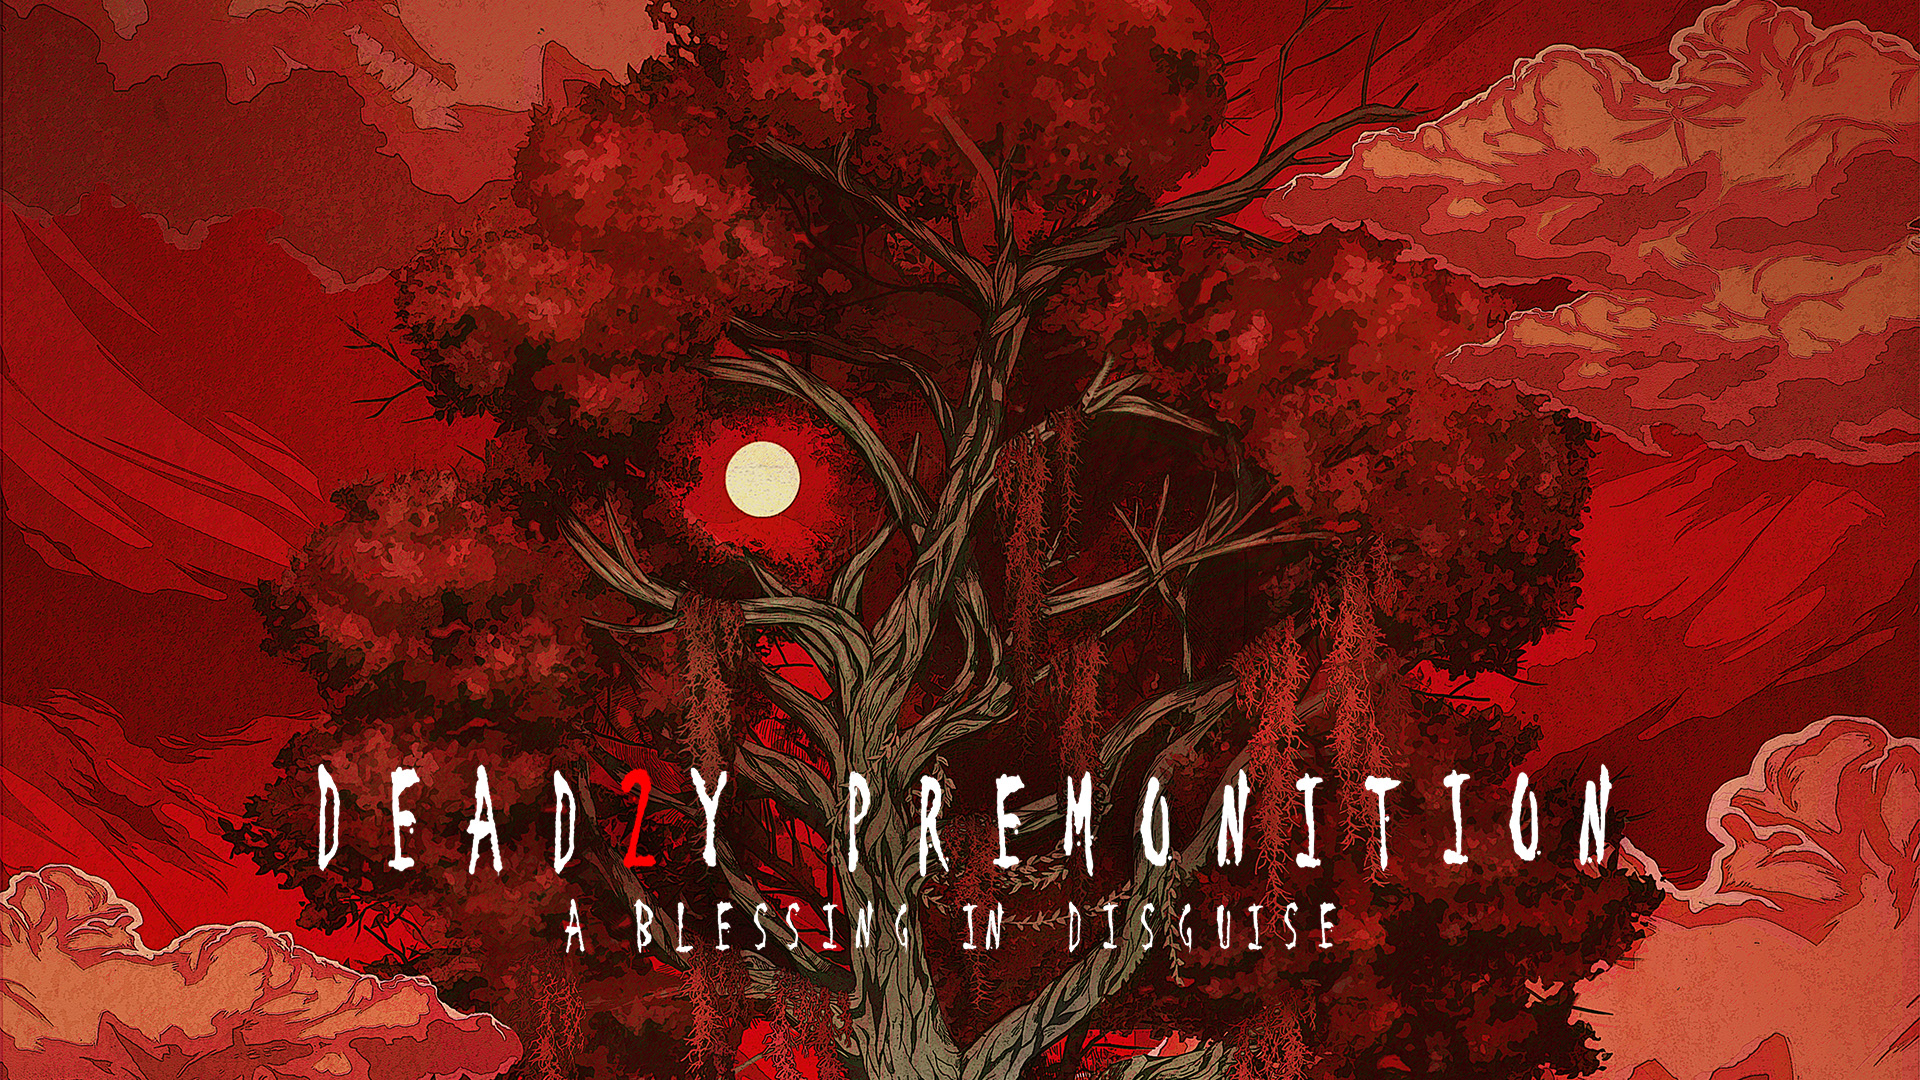 Deadly Premonition 2 A Blessing in Disguise Pre Order Guide 1920x1080